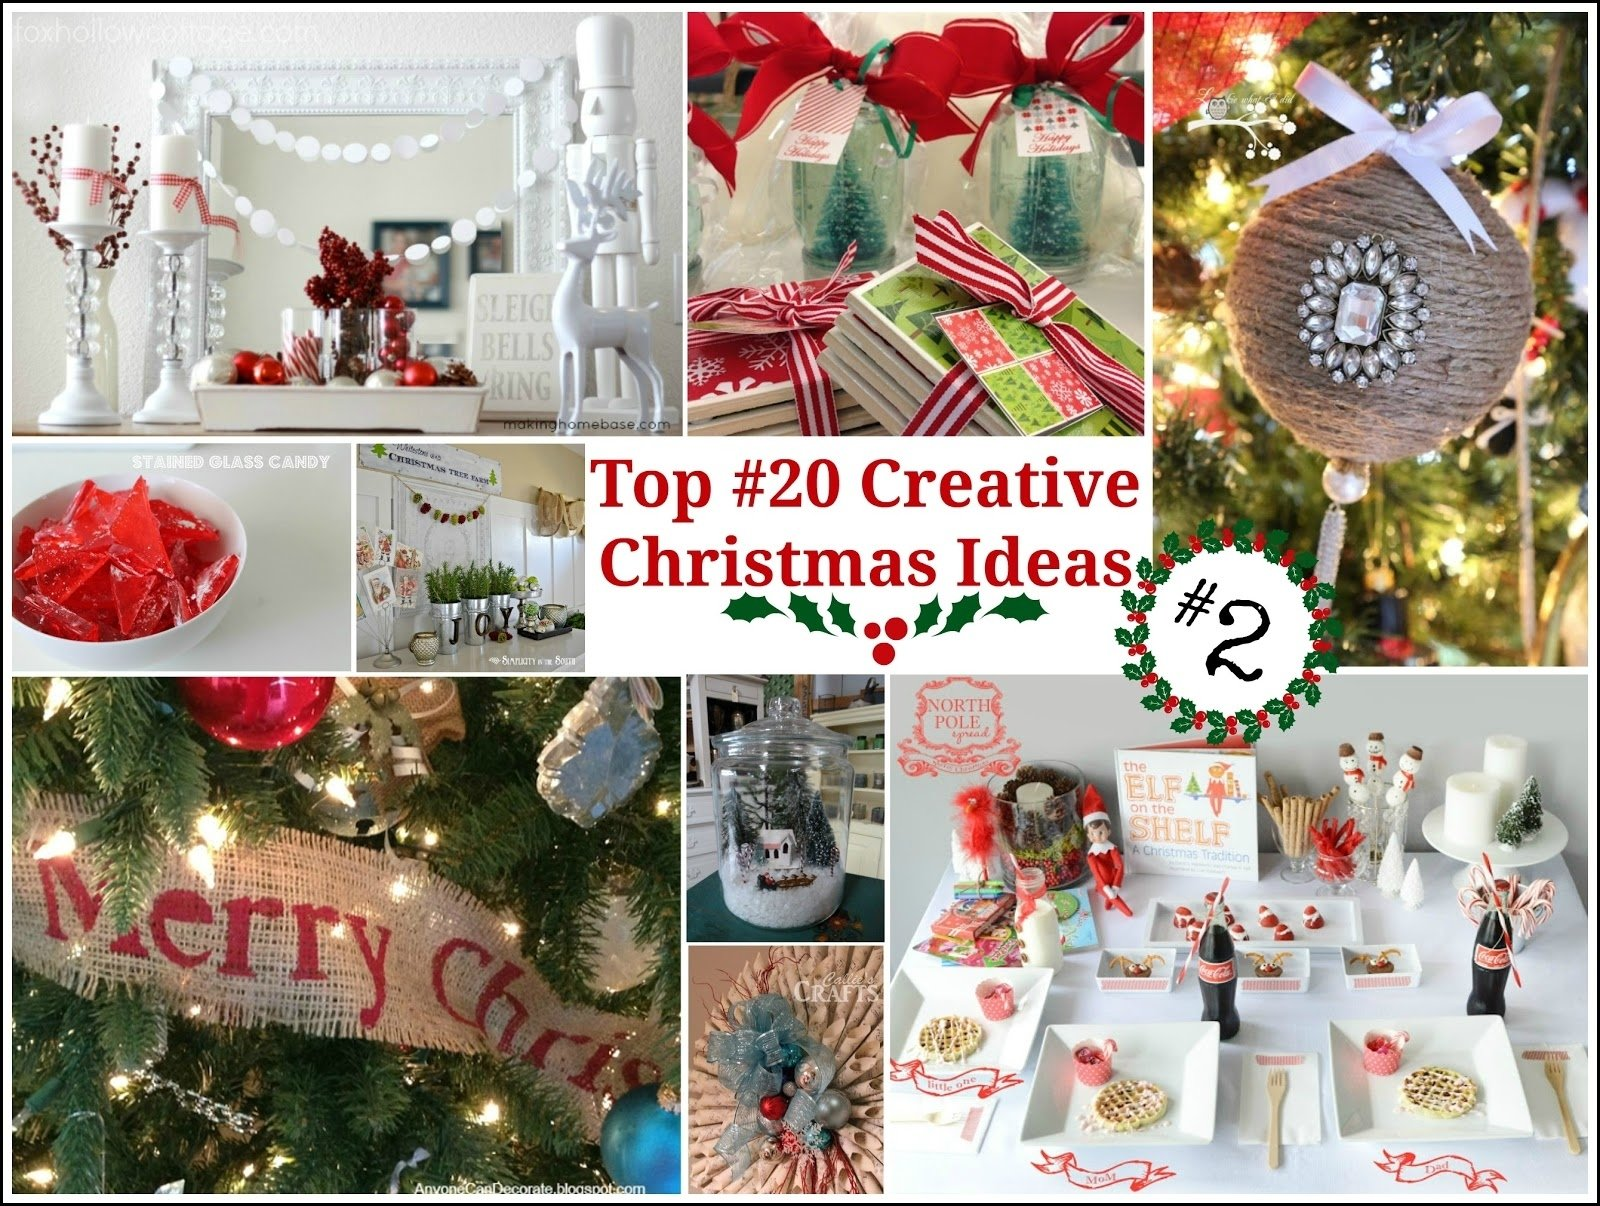 10 Fabulous Christmas Crafts Ideas For Adults top 20 creative christmas ideas ii fox hollow cottage 5 2020